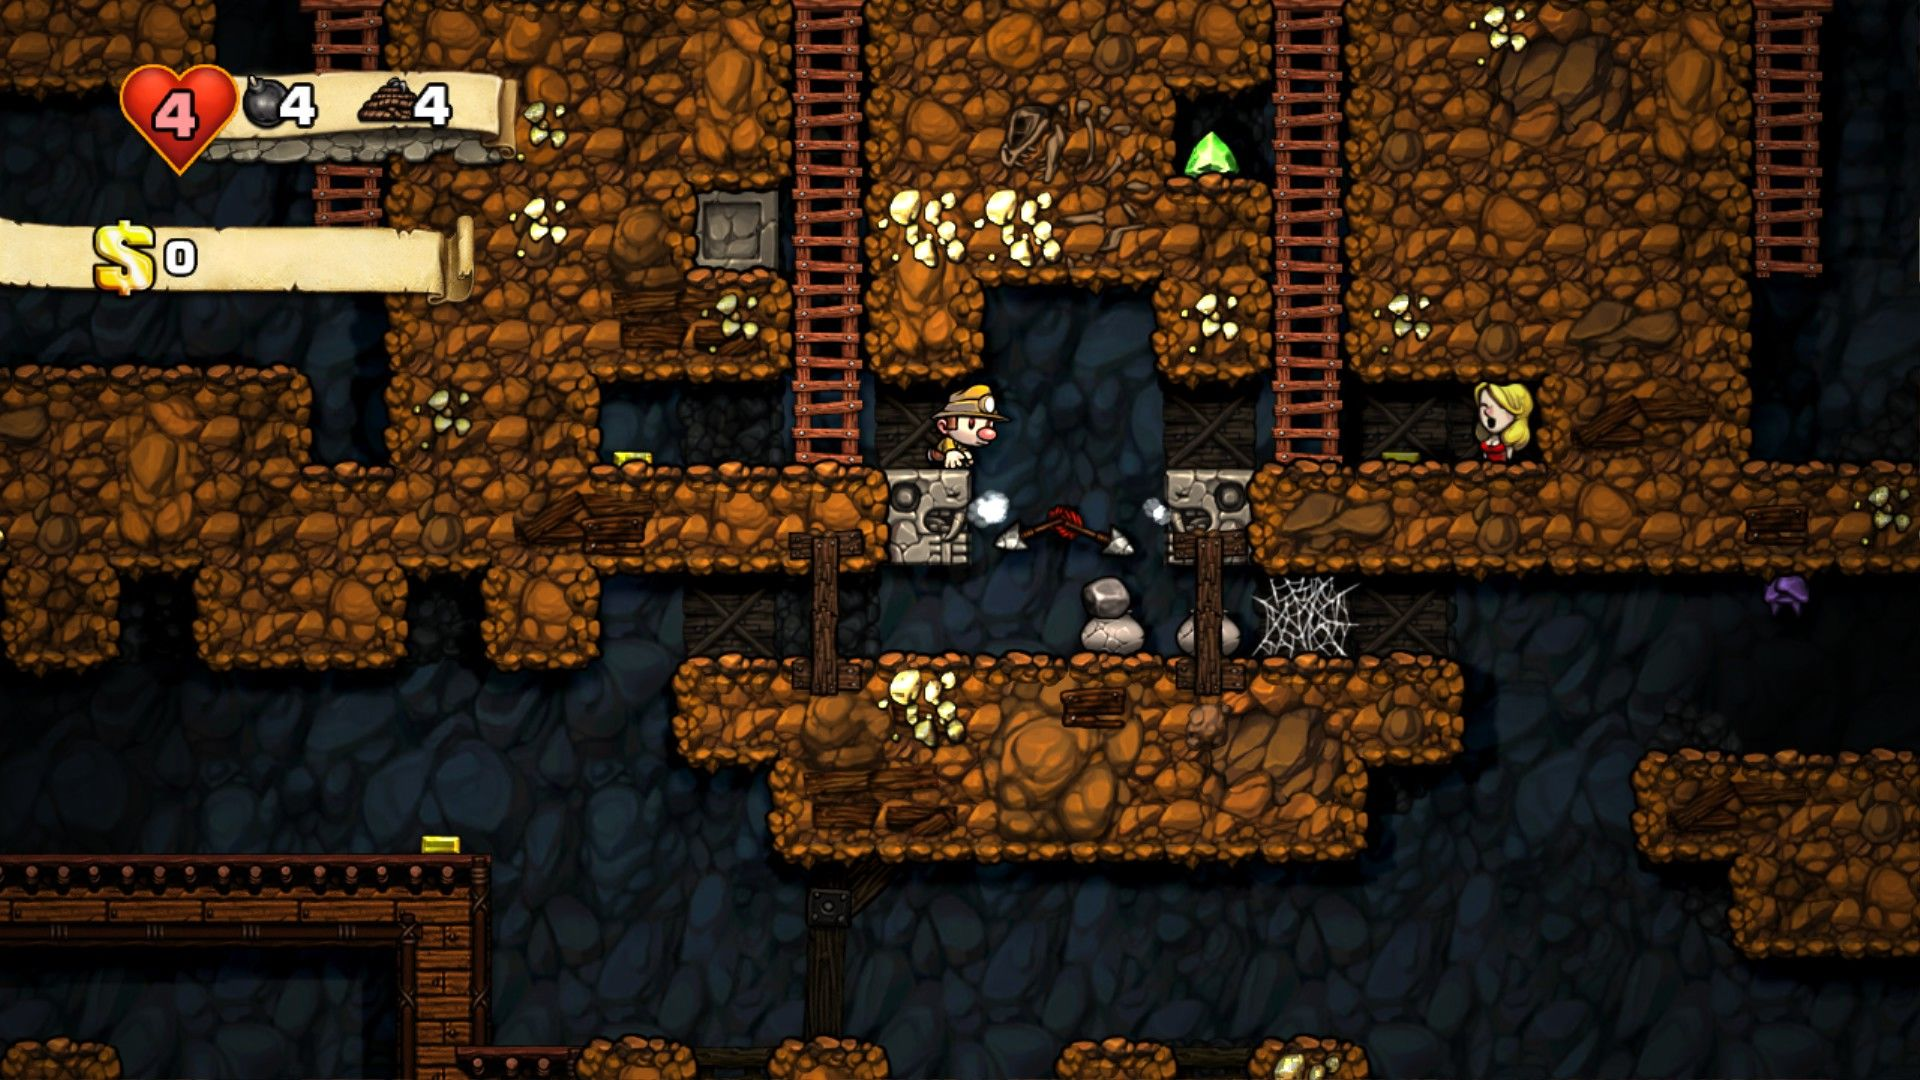 Spelunky has purposely limited randomly generated levels which work in its advantage